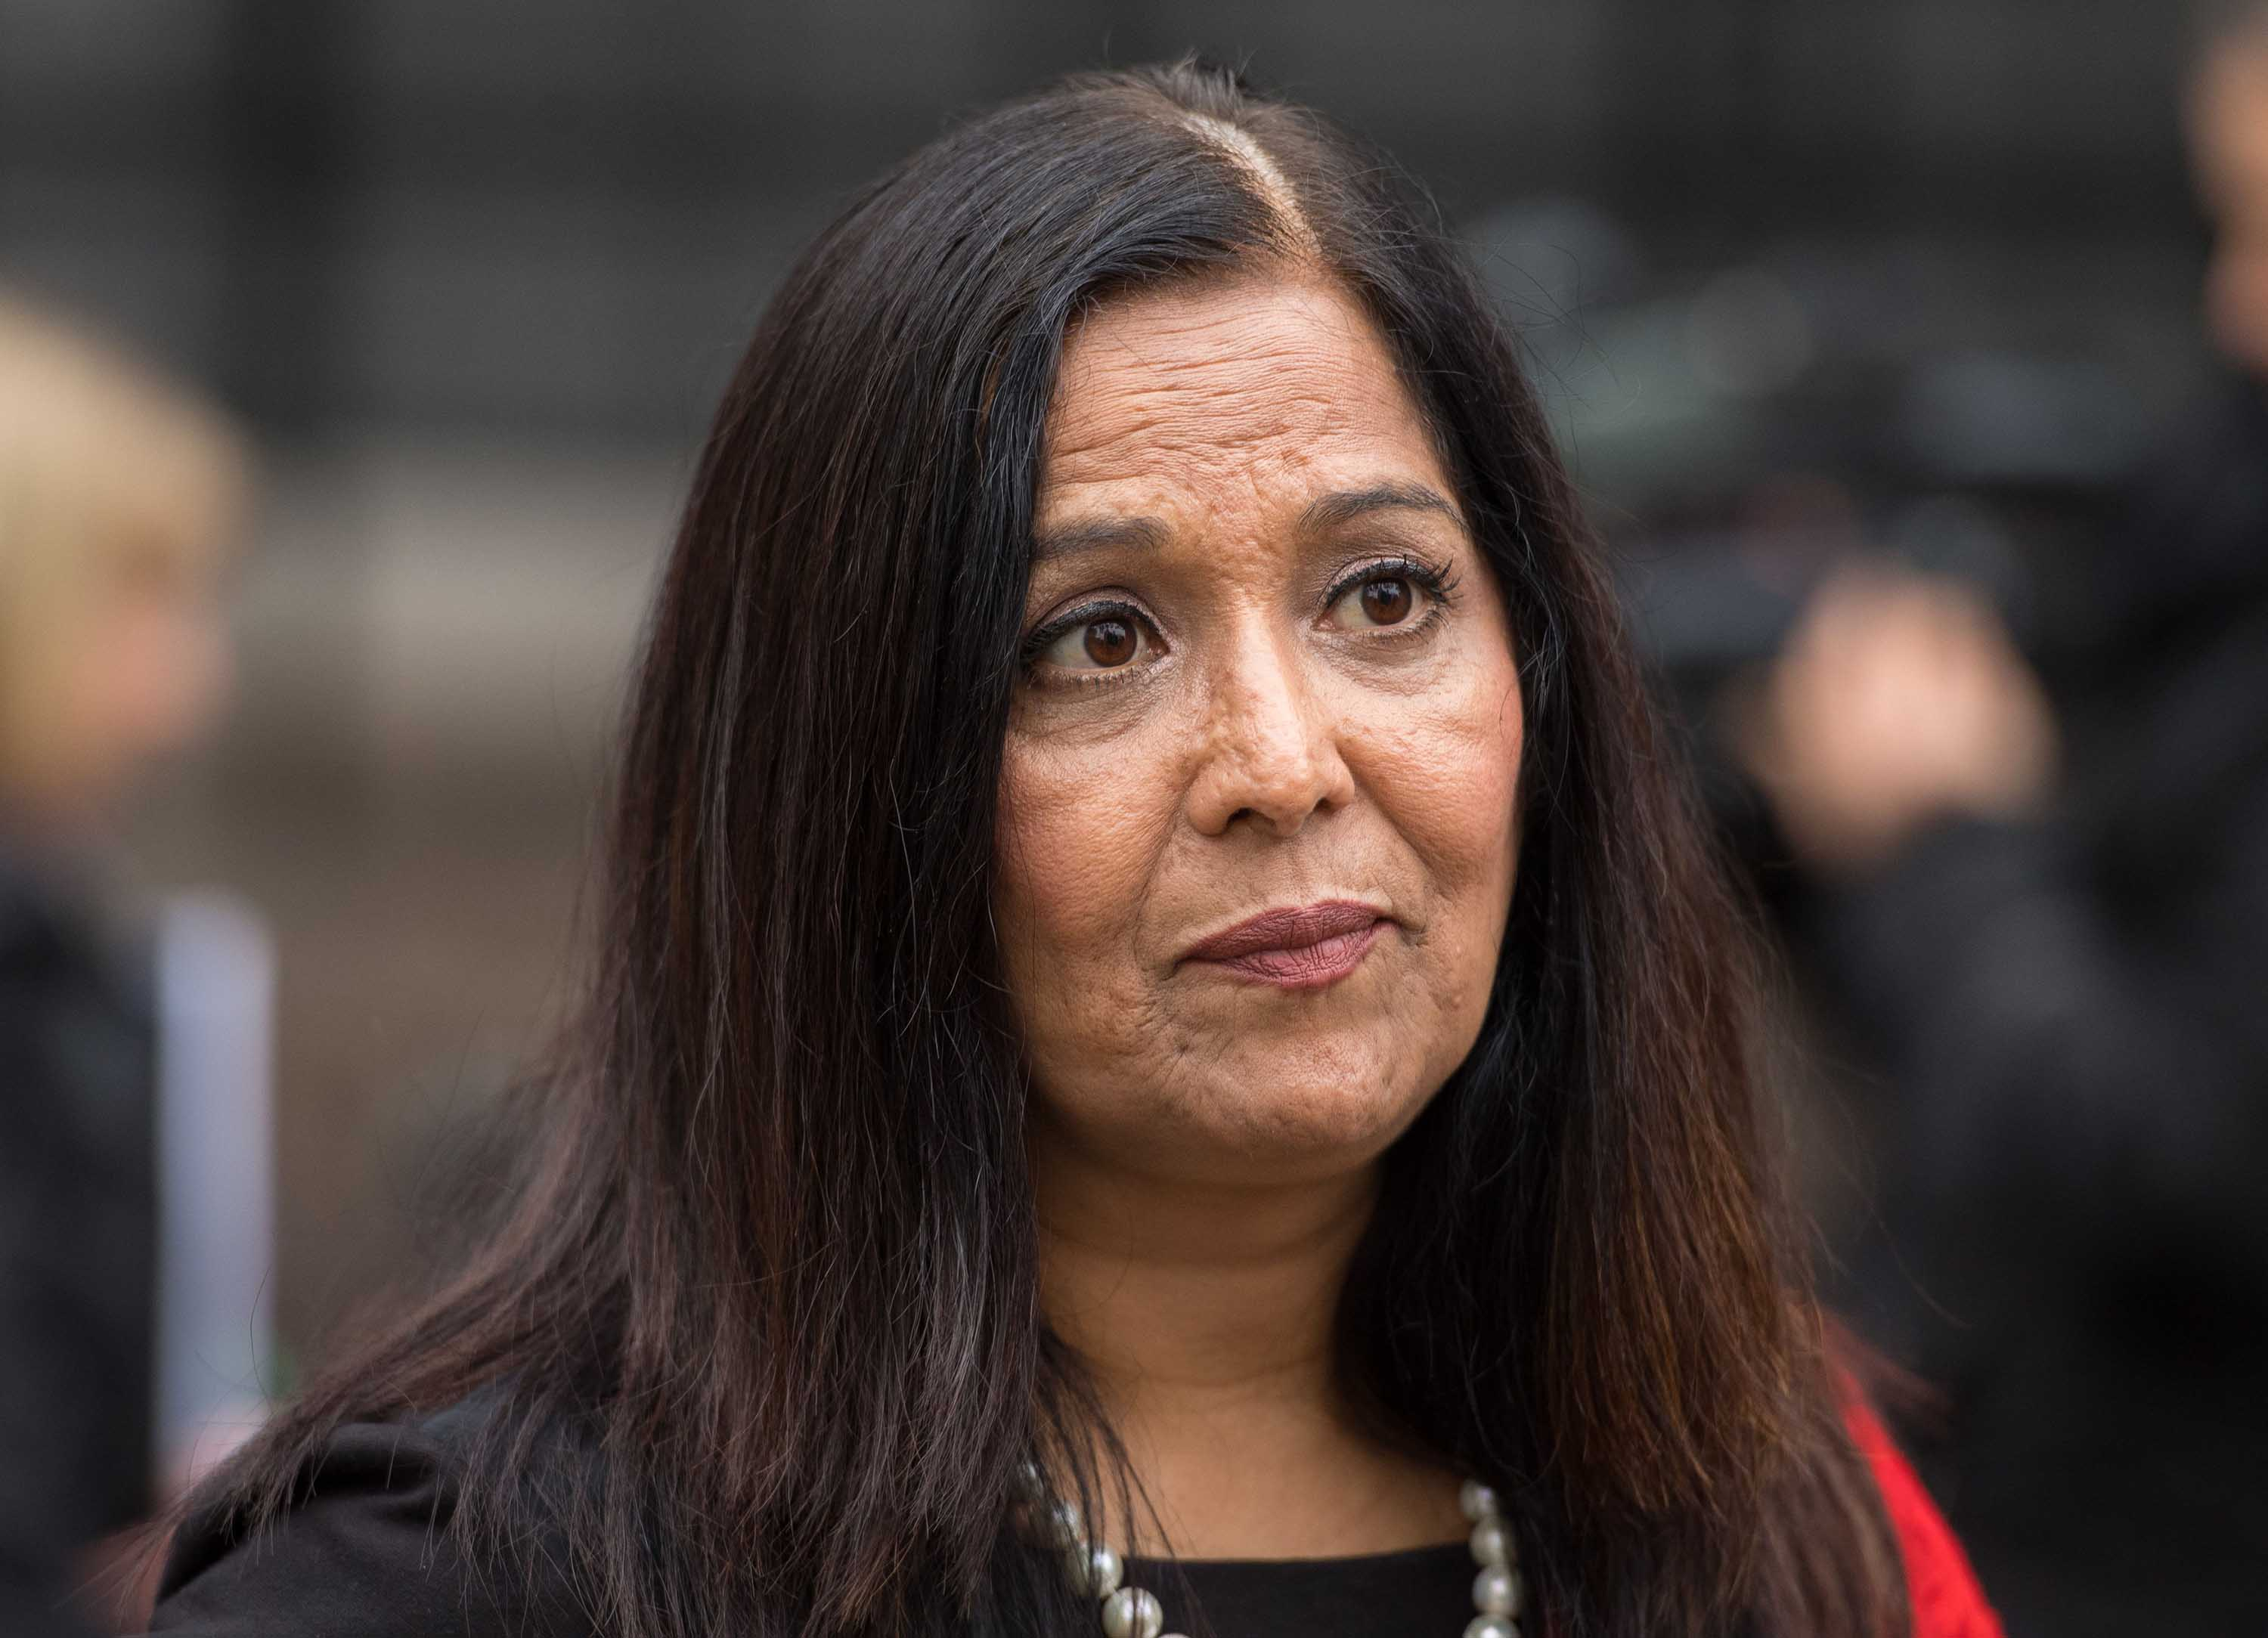 British MP Yasmin Qureshi is pictured in London in November 2017.